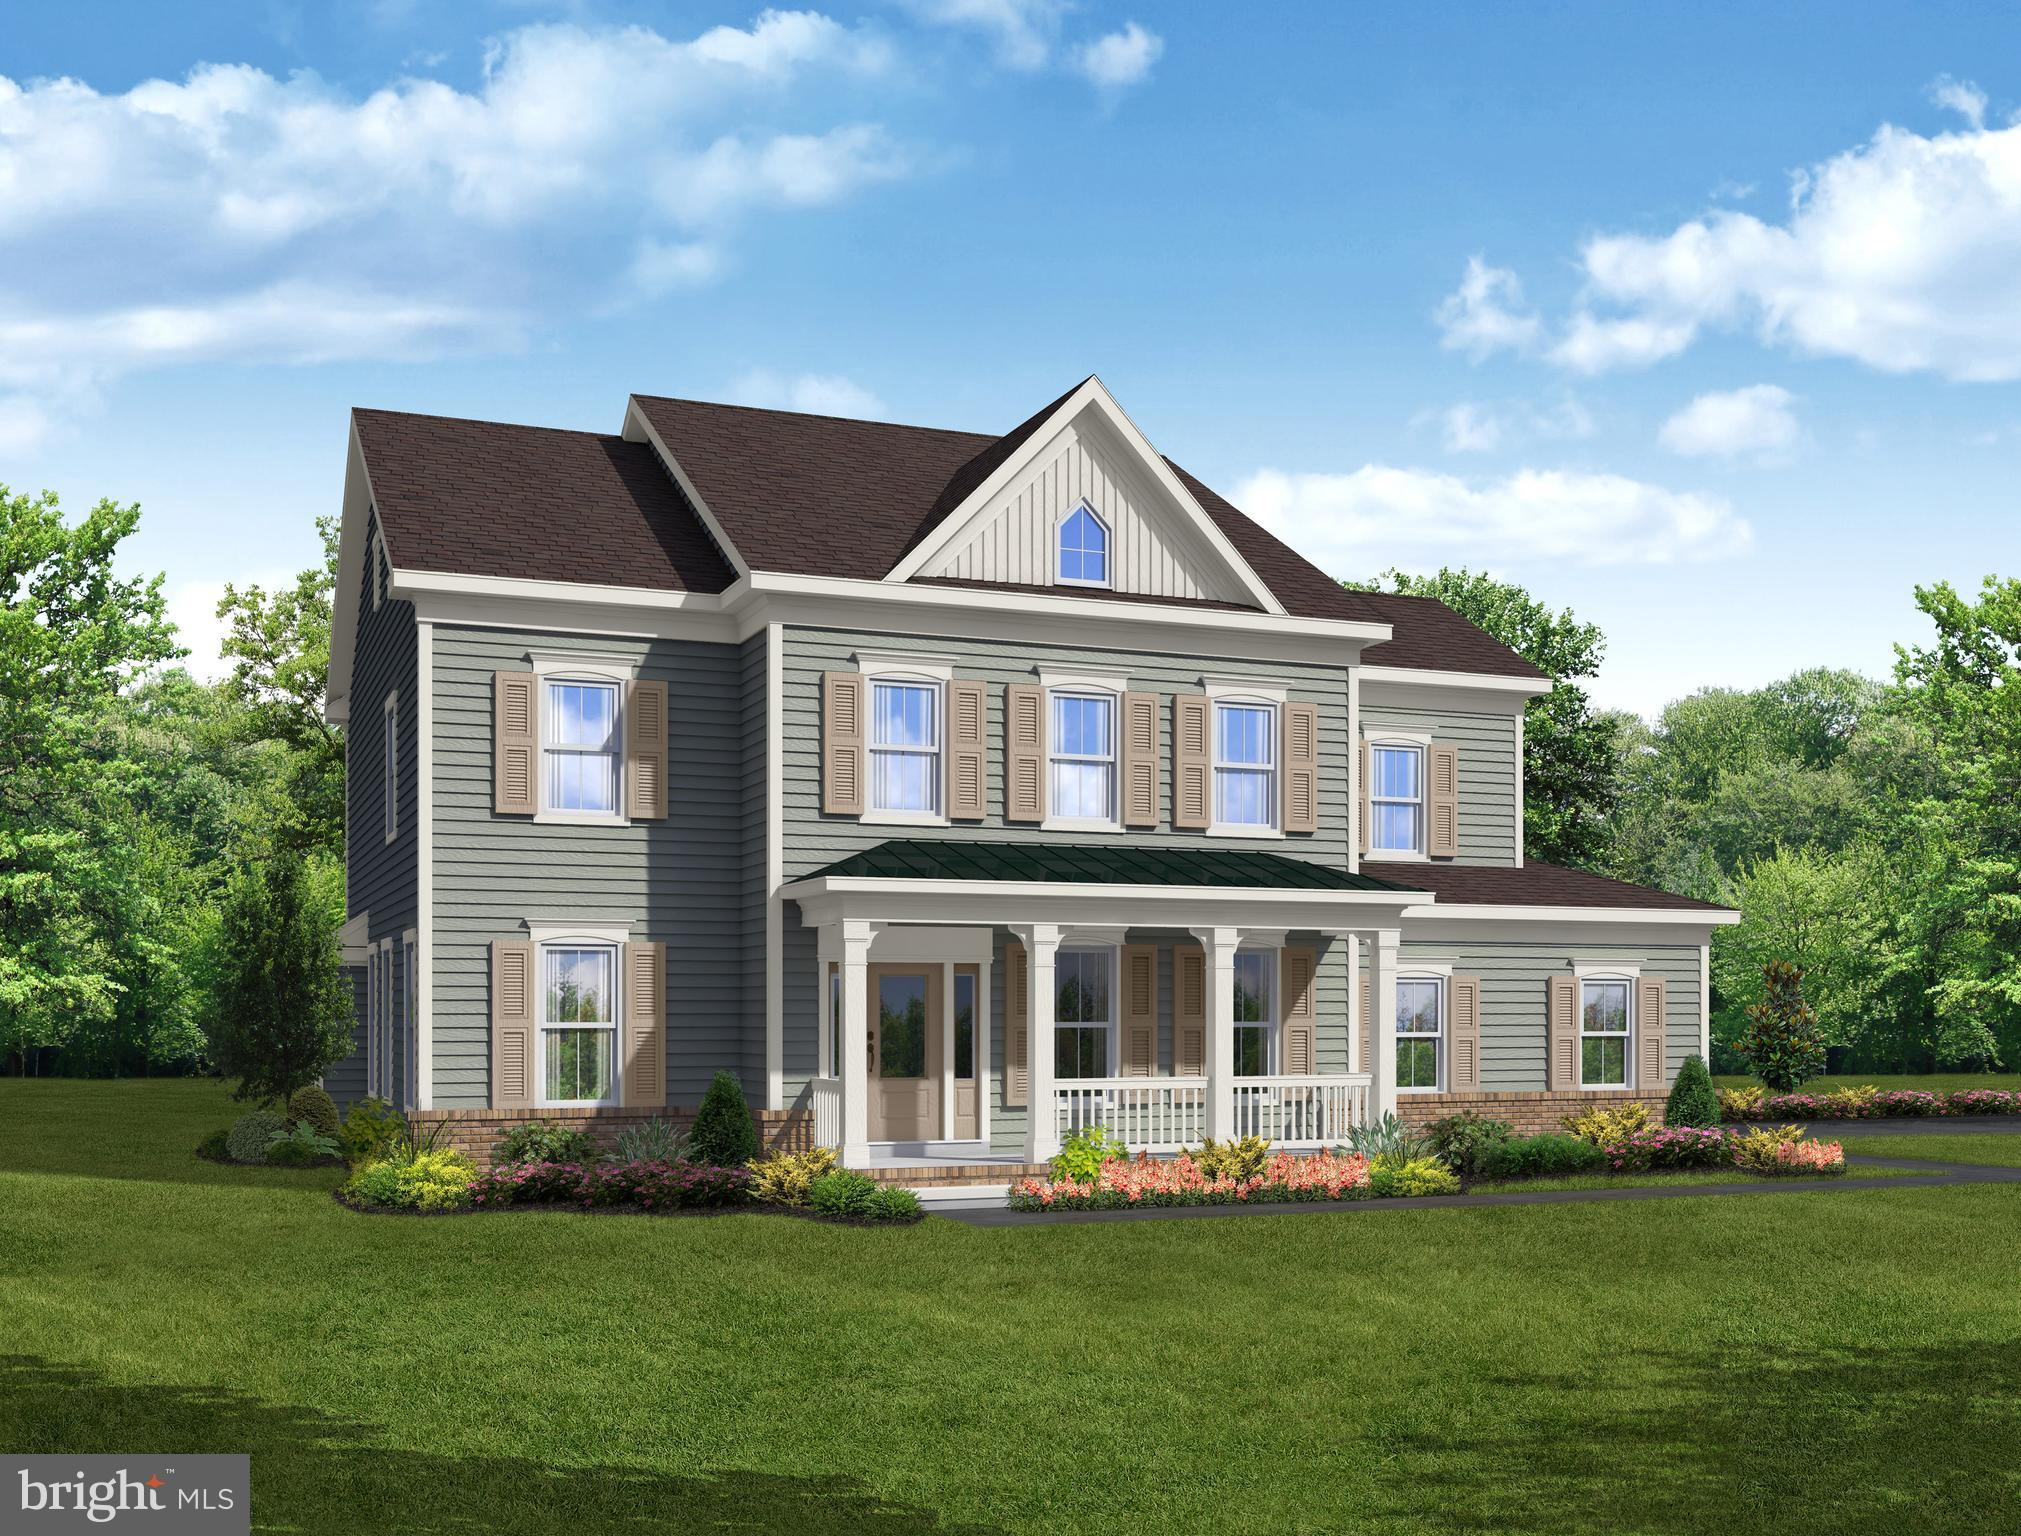 Our Carter Presidential Series Model. 4 bedrooms, 2.5 bathrooms, 3166 square feet standard. Options include 6' family room extension, sunroom, inlaw suite, owners luxury bath, 3 car garage and finished basement. Starting from $454,900. This is a to be built home. Please visit Bayberryhomes.com to view interactive floorplan.